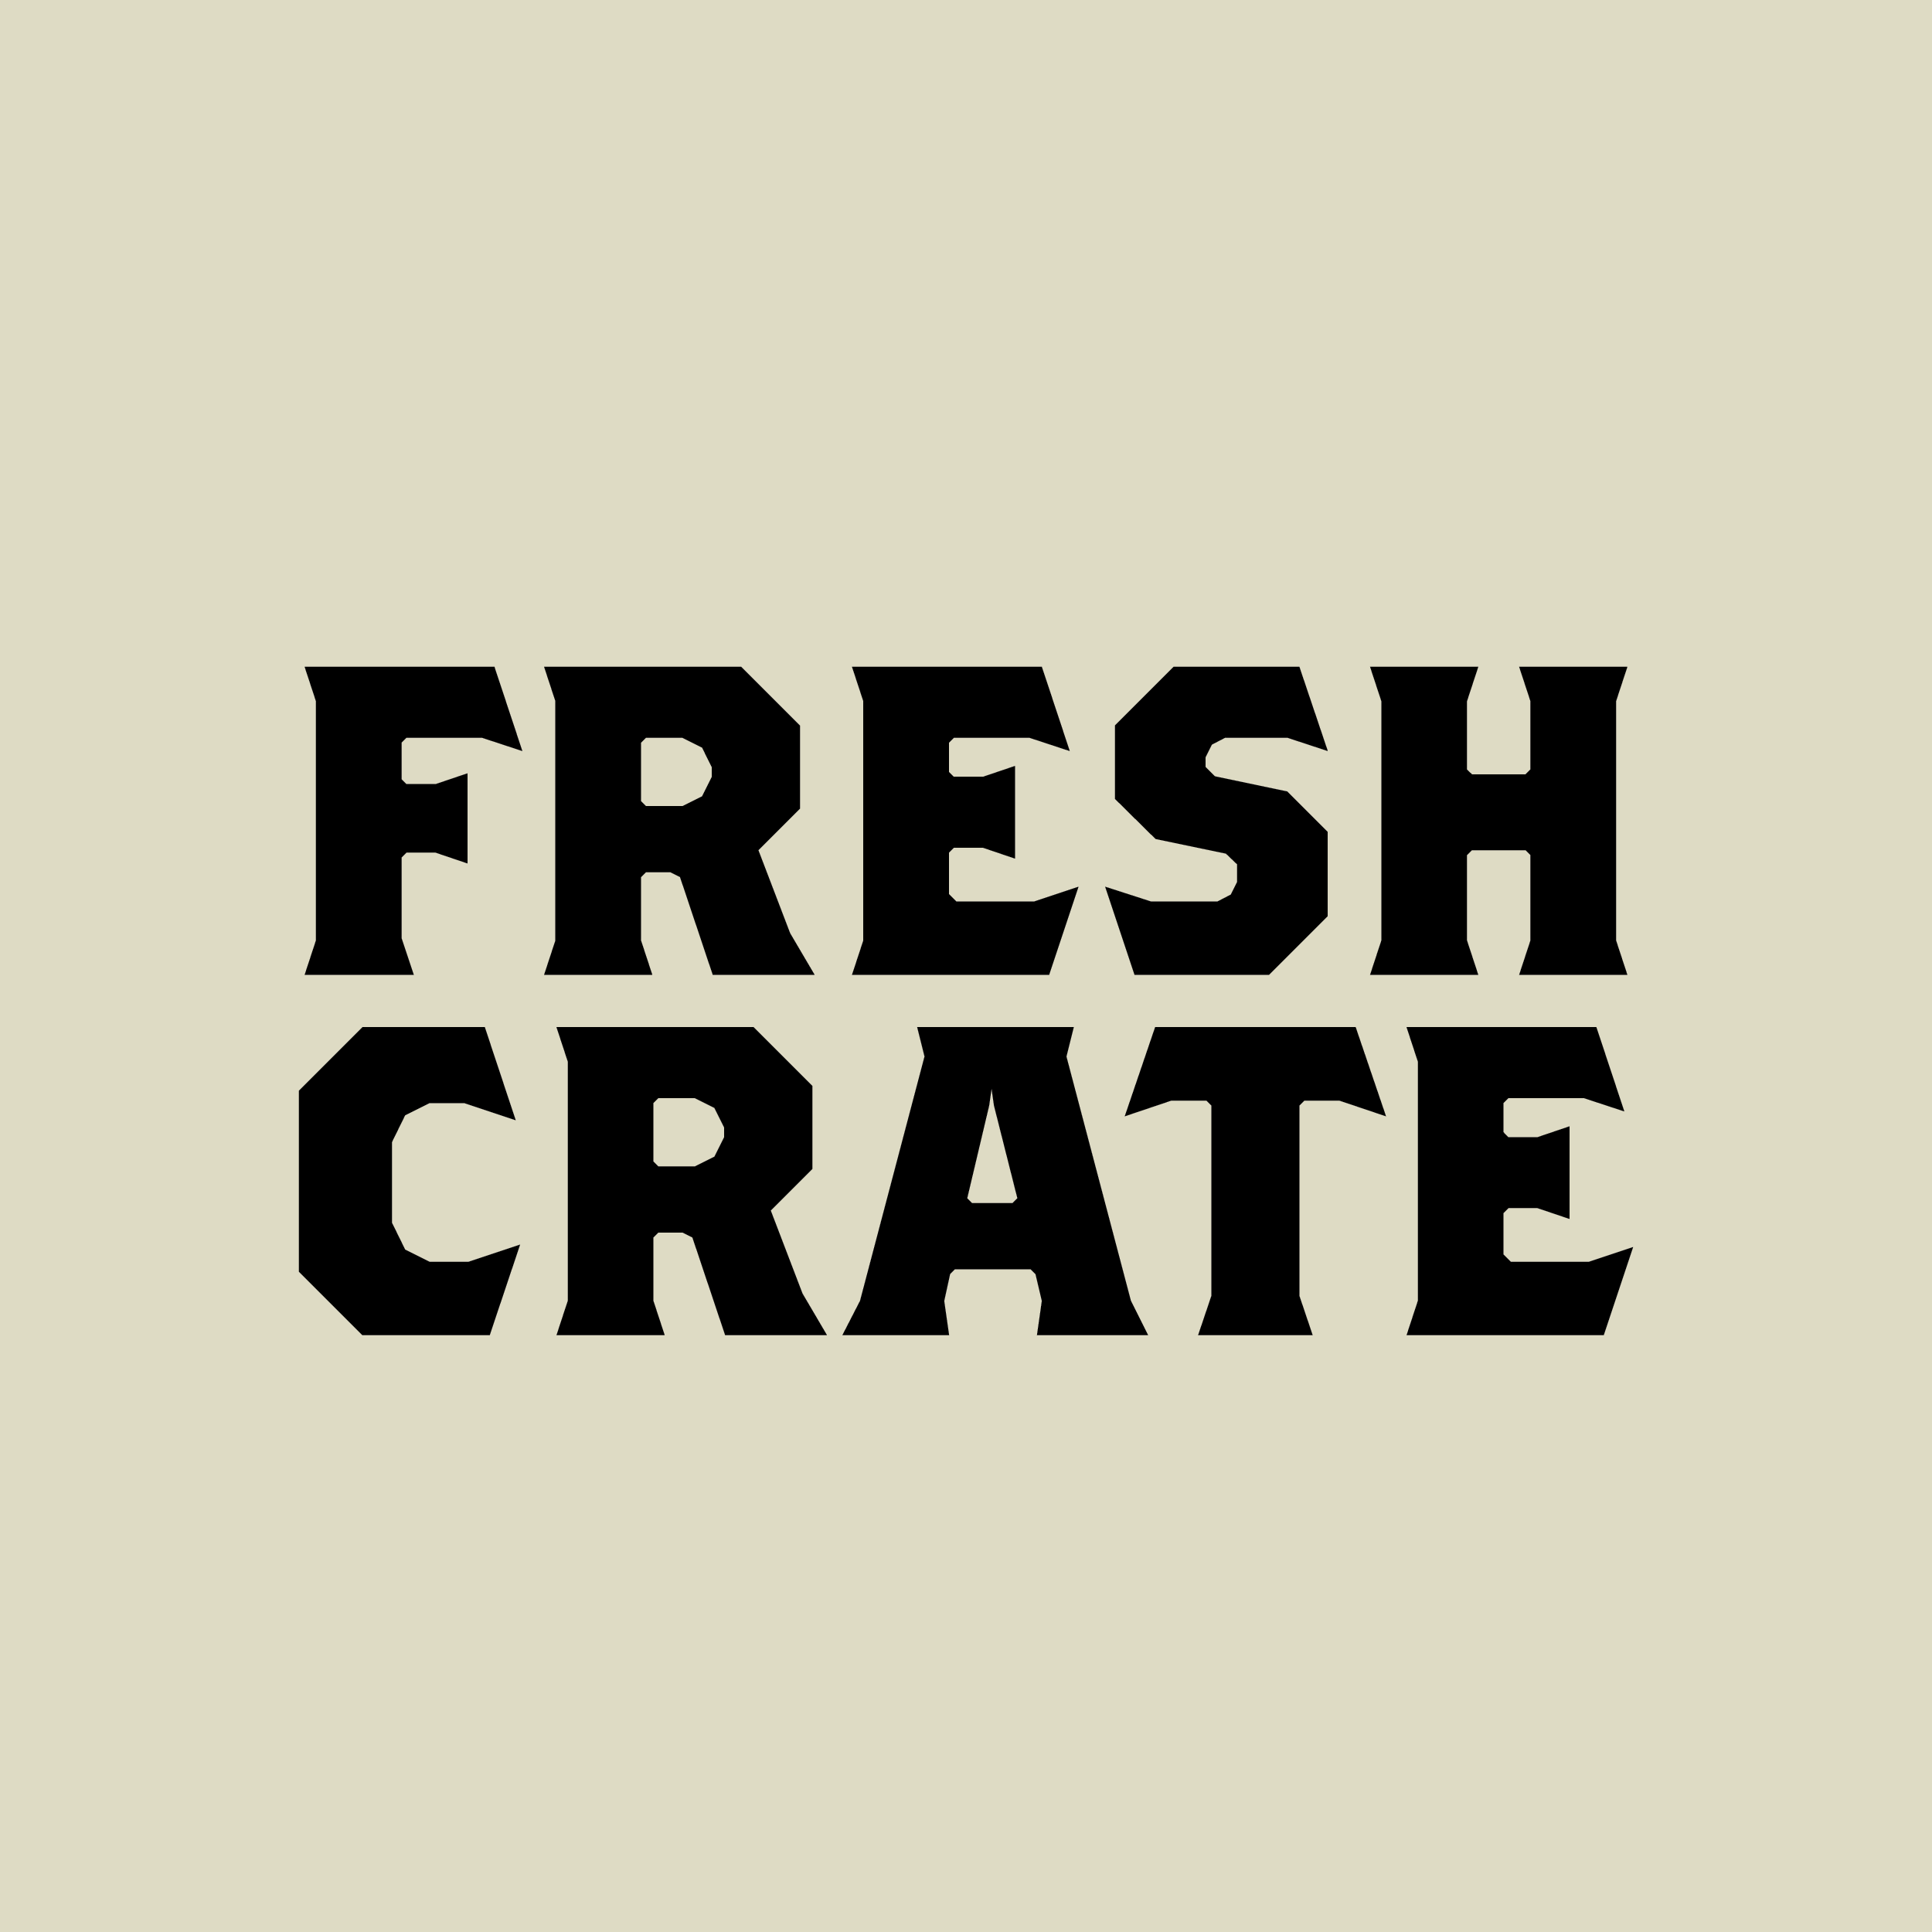 FreshCrate_WordMk_web.png